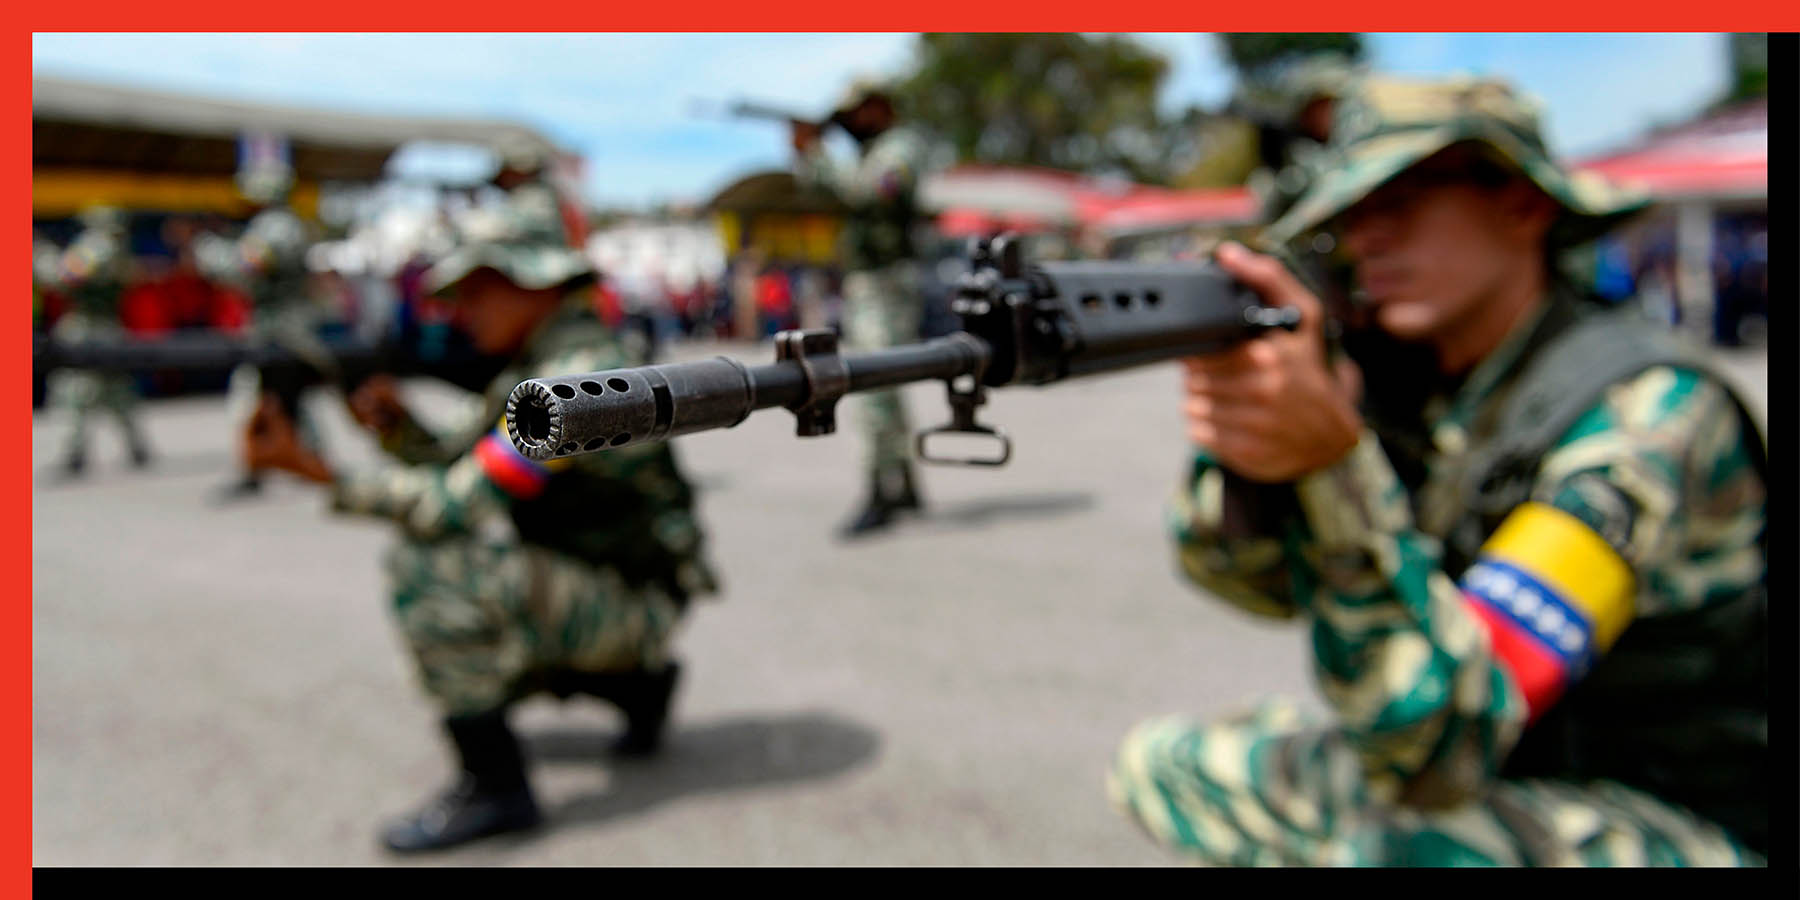 Members of the National Bolivarian Militia take part in military exercises in Caracas, Venezuela, on Sept. 16.